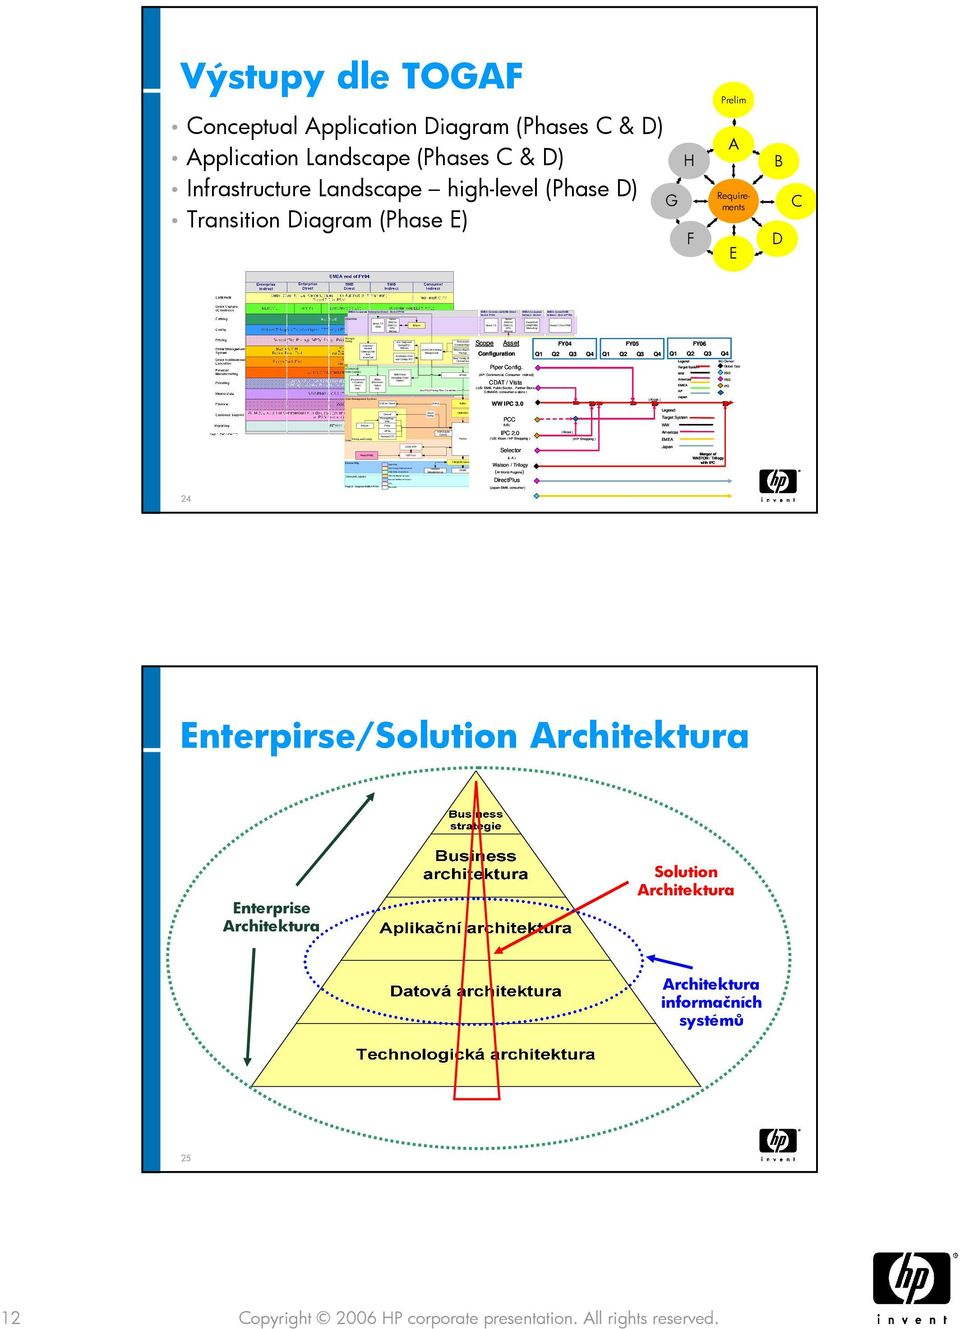 5 CRM B2Bis (Electronic Orders EDI Page 2: Diagram EMEA FY04 Siebel 2000 for CRM CC, SFA, Mrkting OSS for Direct Conrad Pricing Eng.